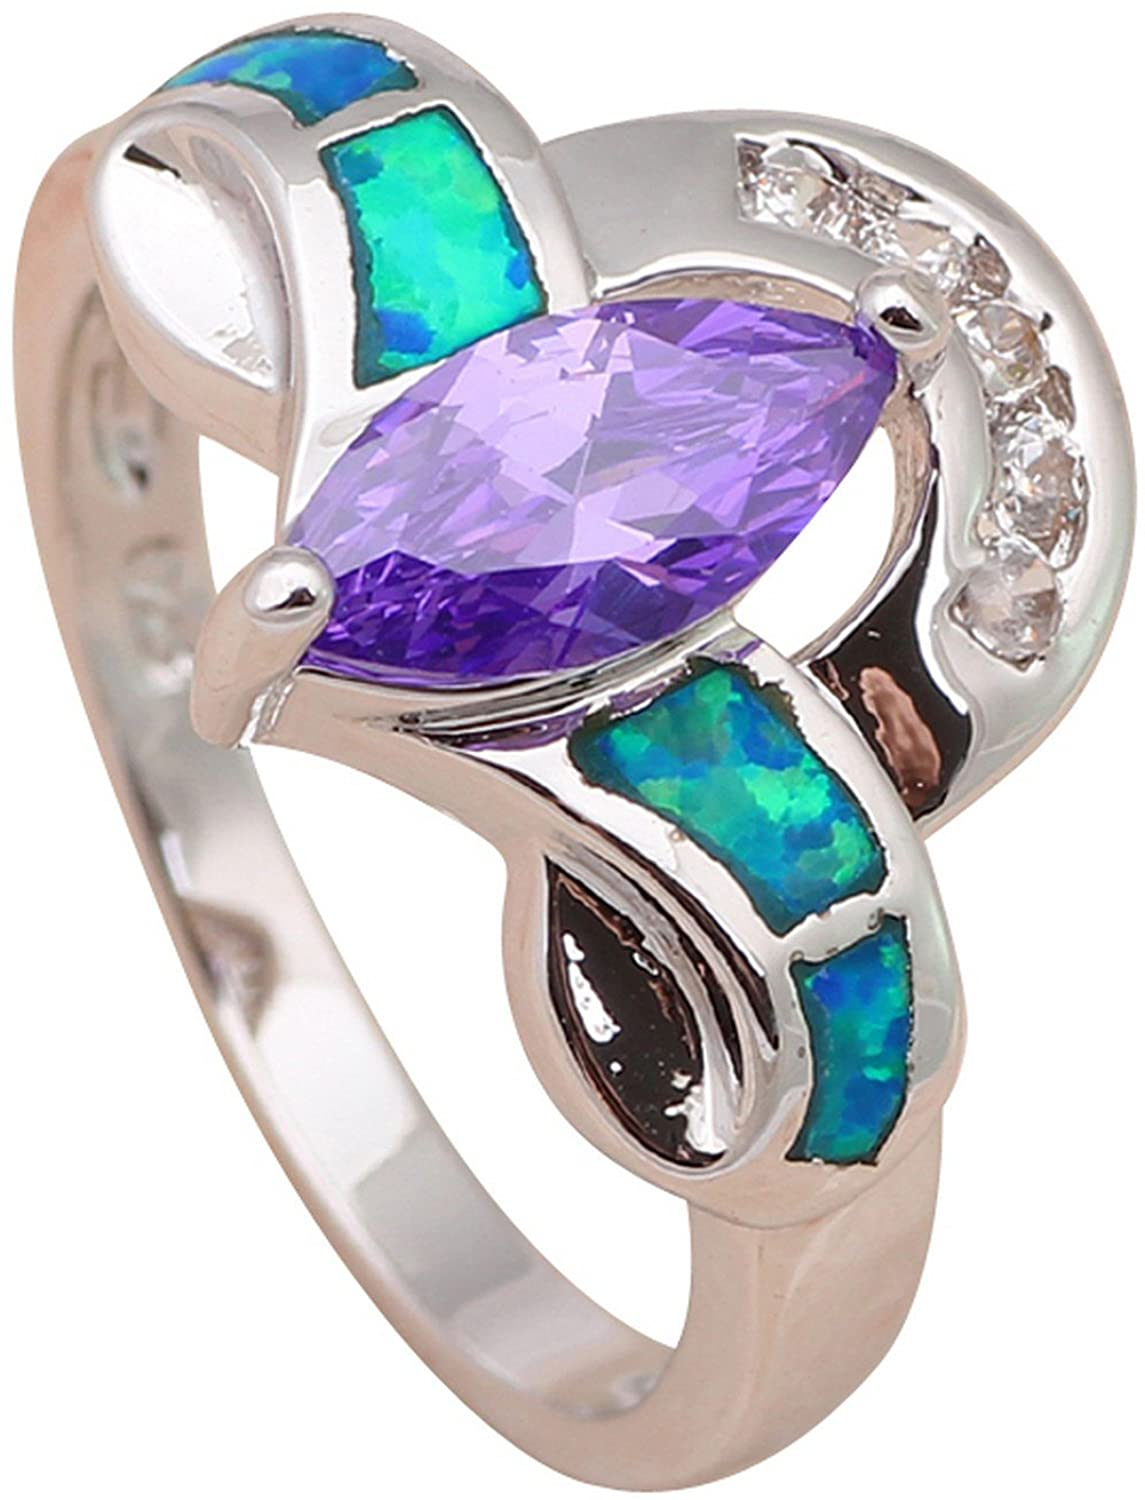 GemMart Jewelry Plant style Amethyst Silver blue fire opal Ring jewelry 7 8 6.5 7.5 OR503A